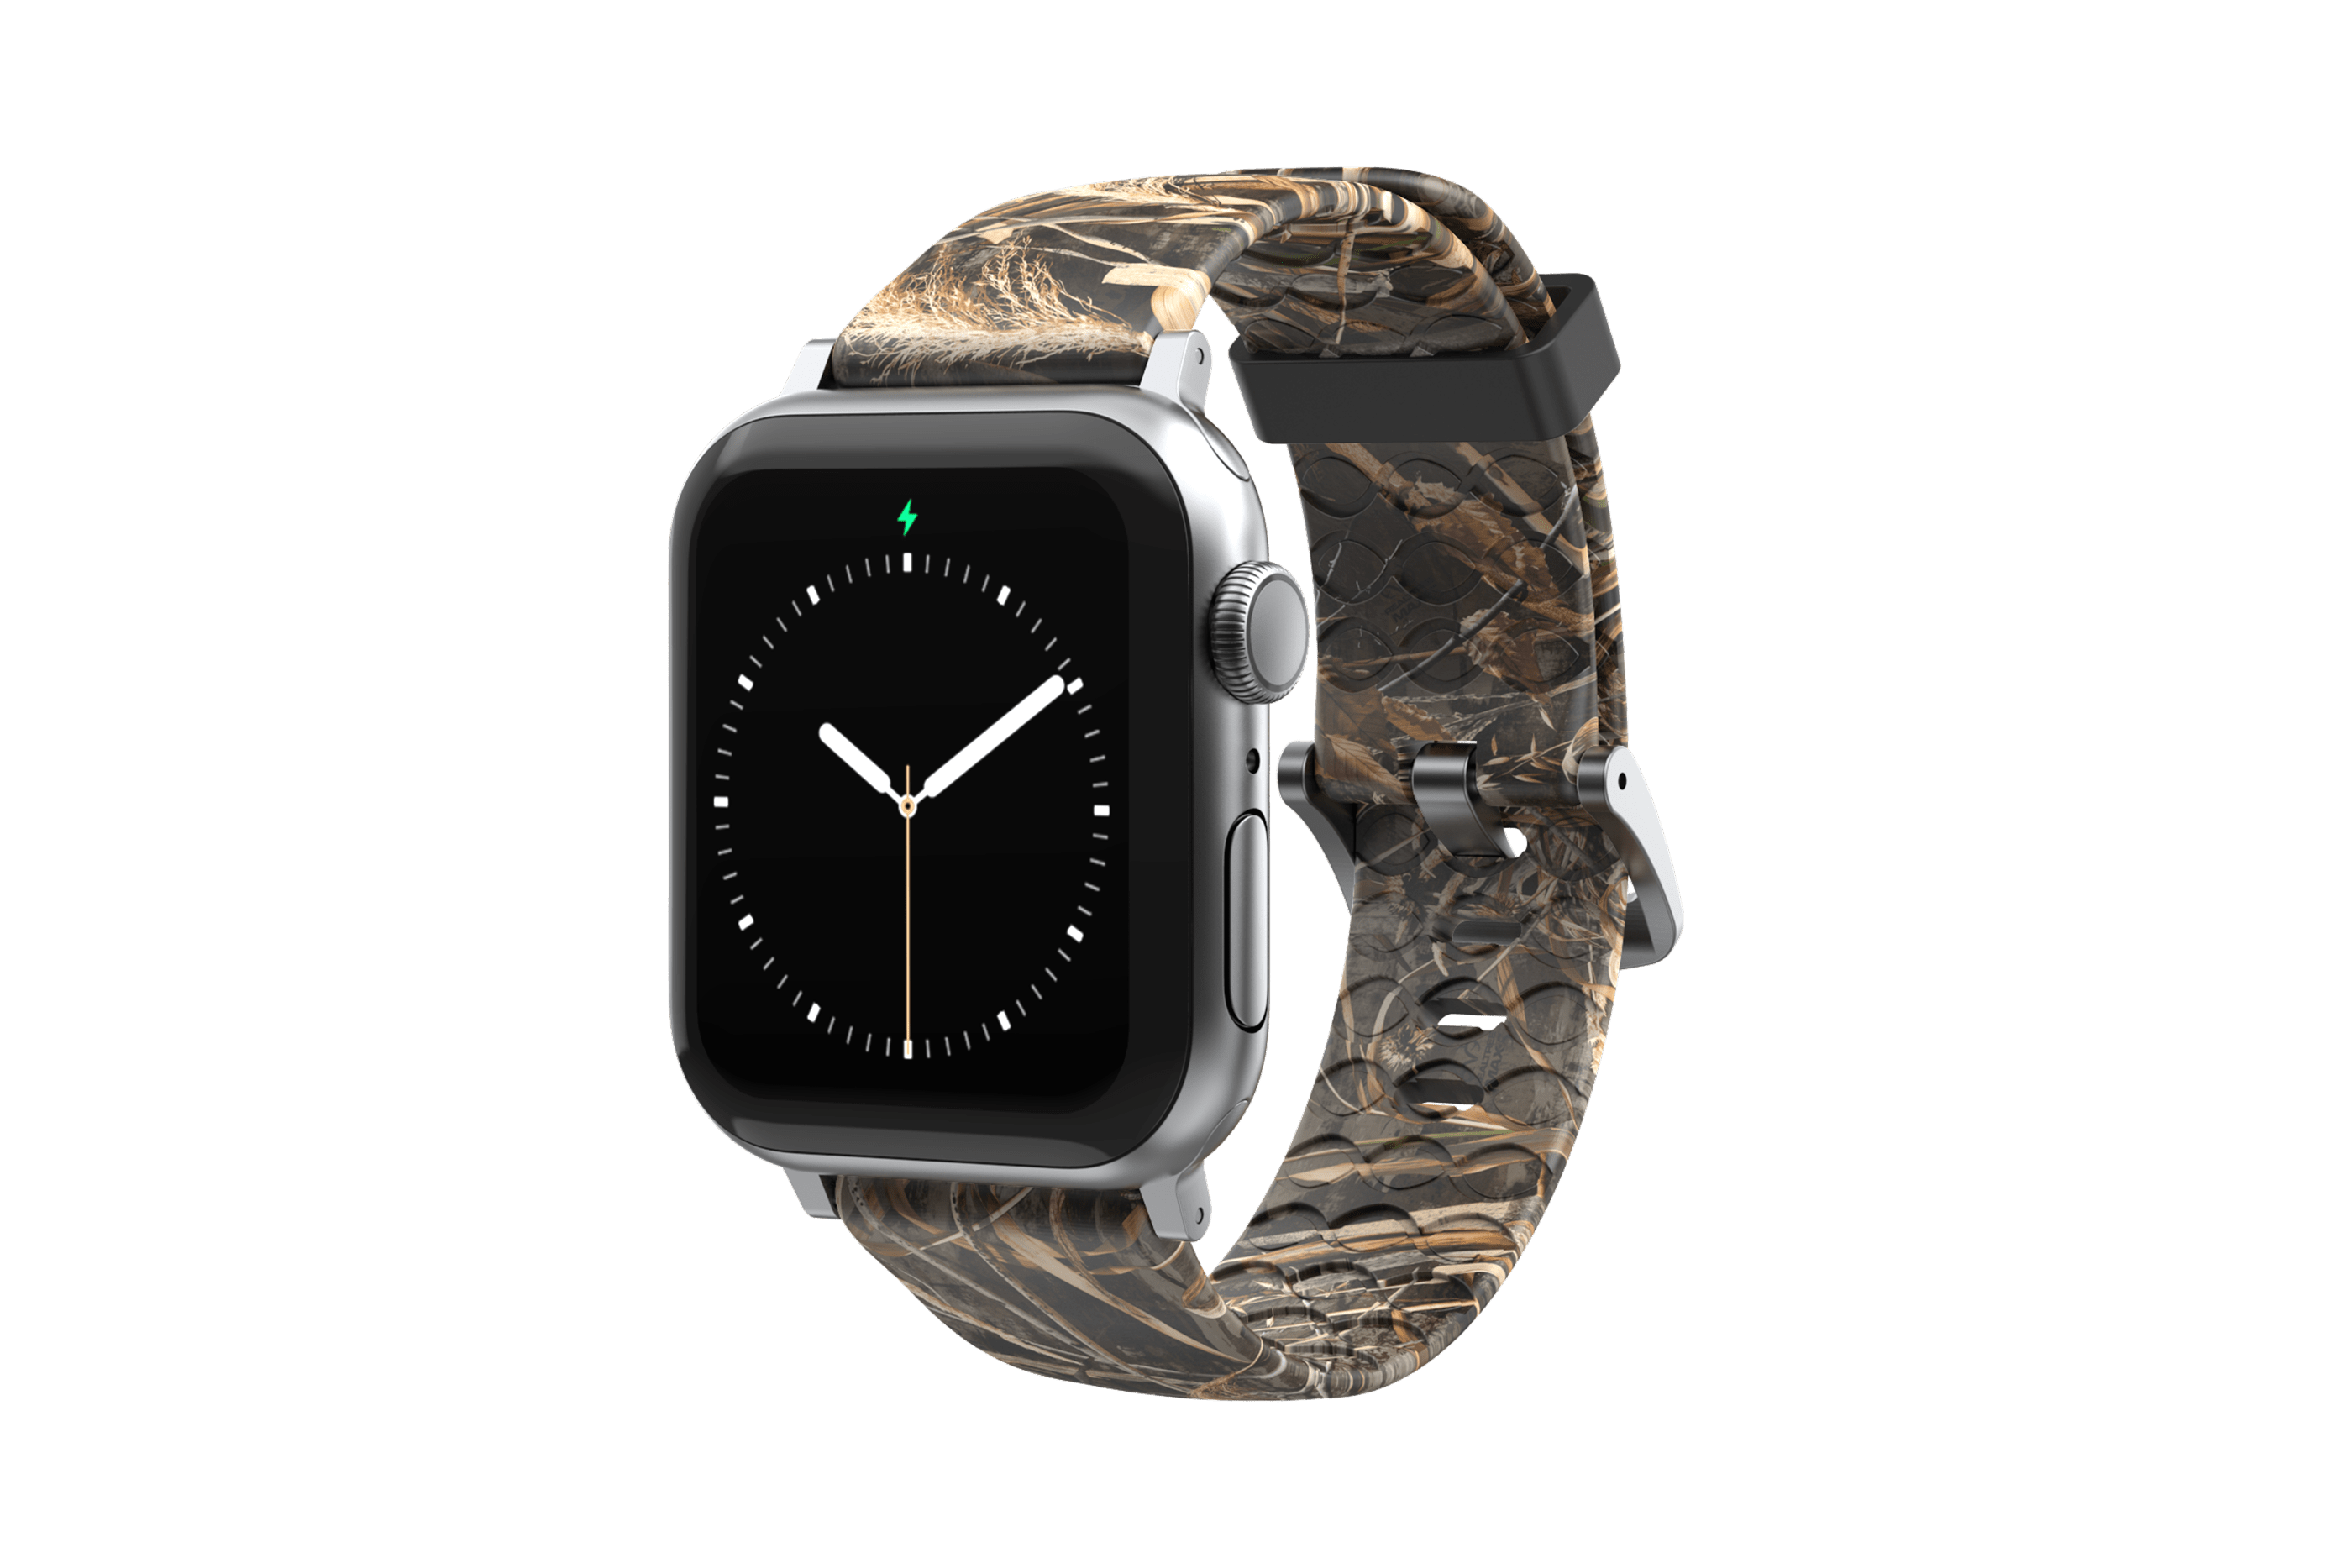 Realtree Max 5 Apple Watch Band with gray hardware viewed front on